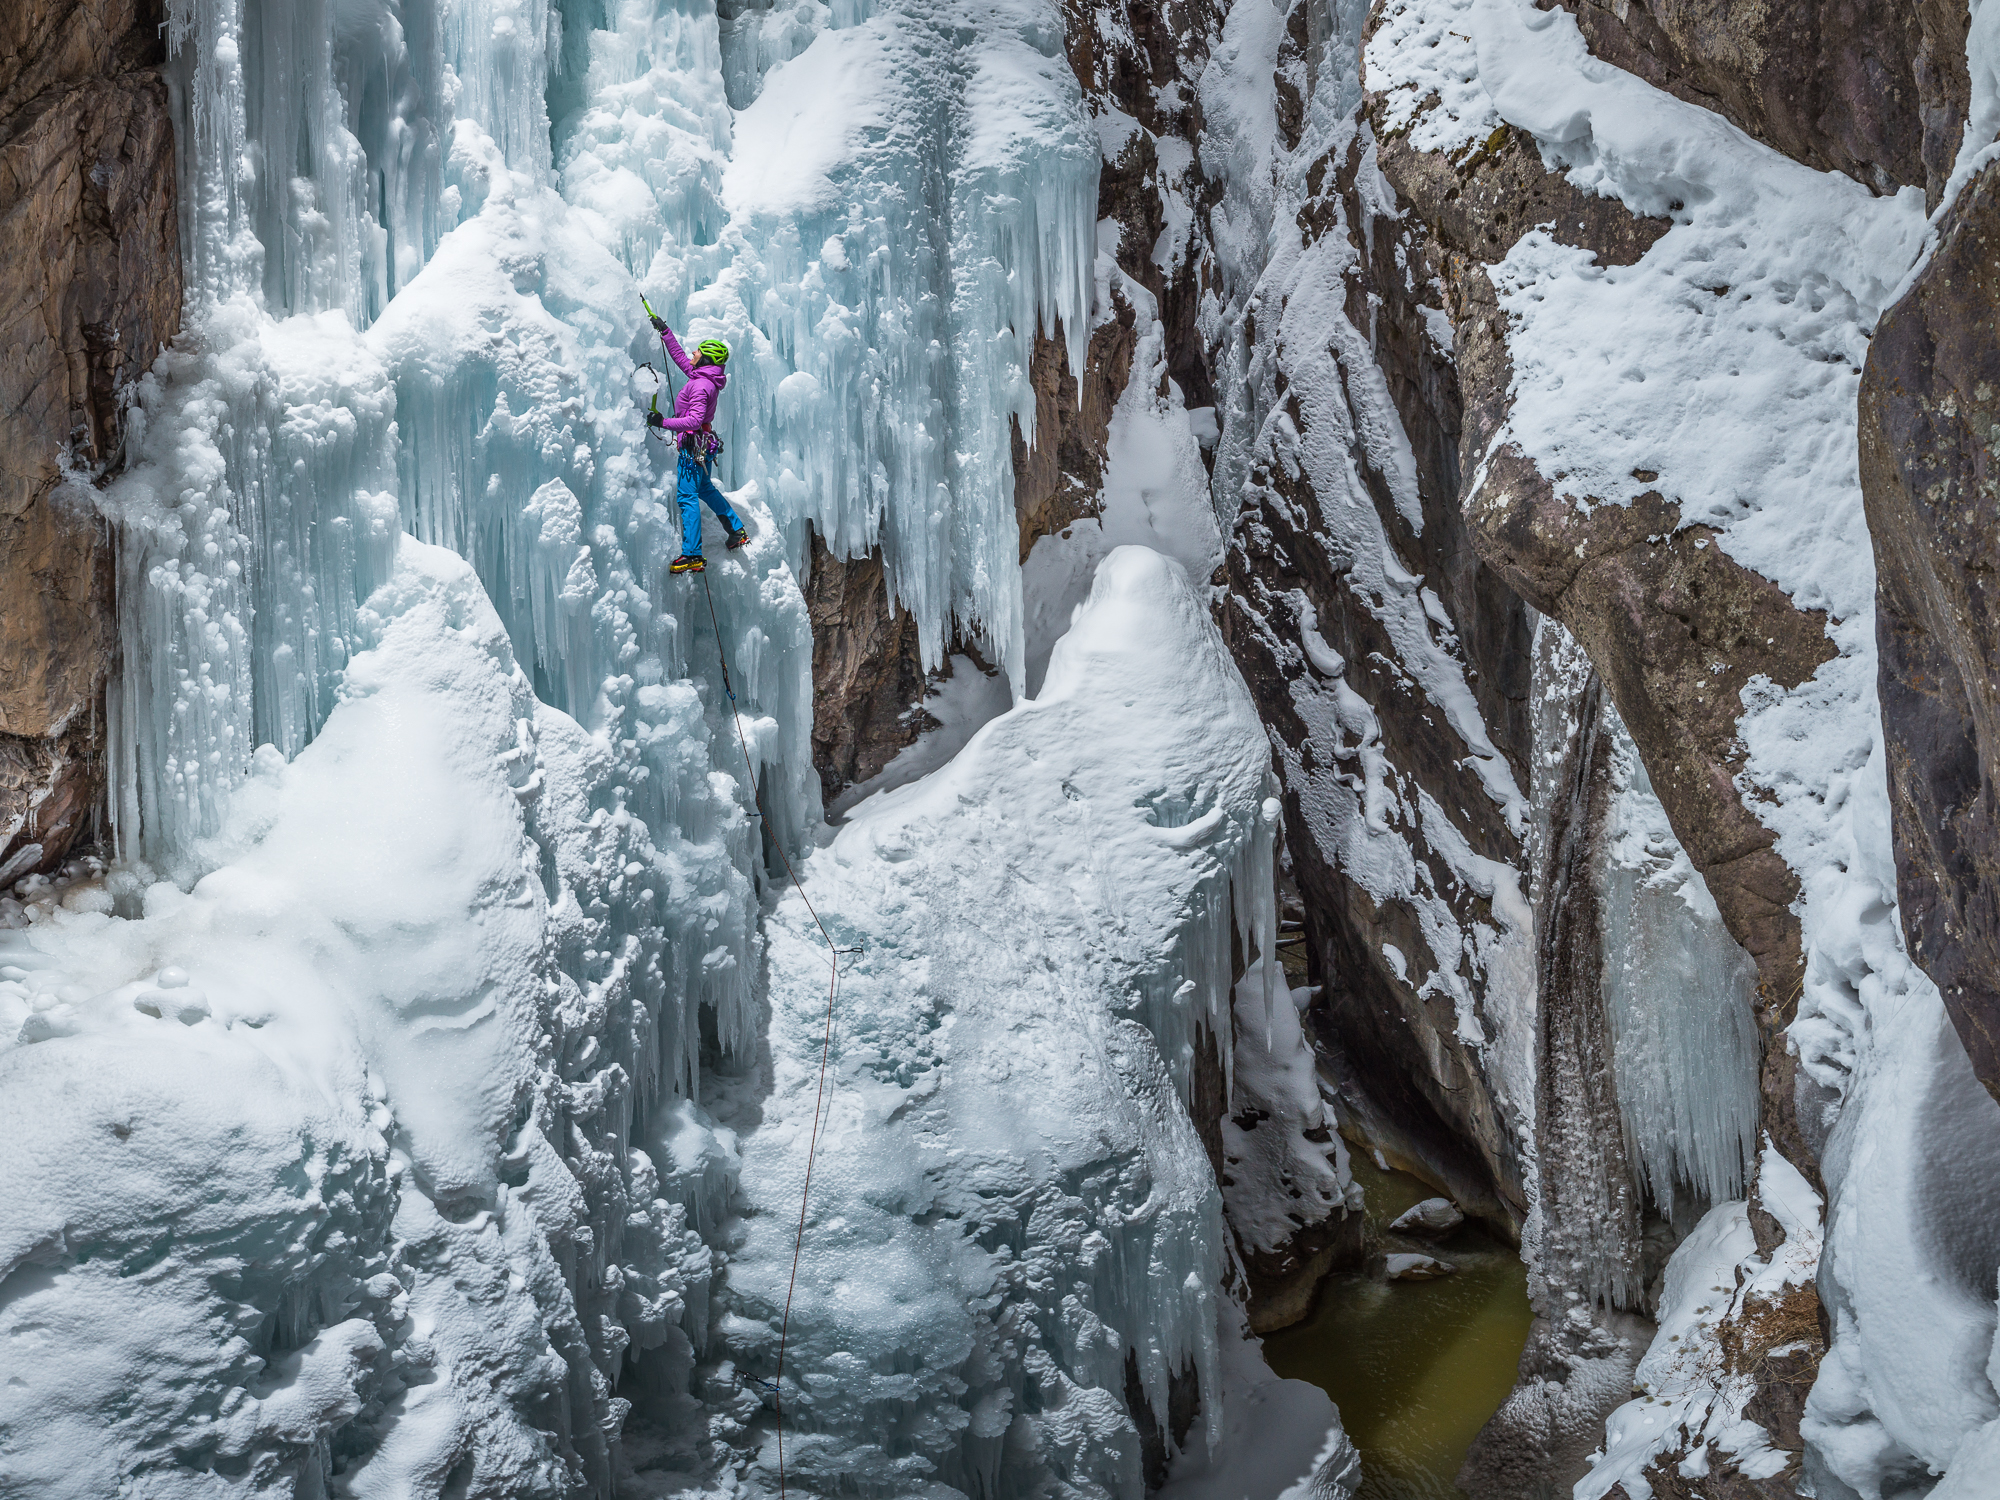 dawn glanc ice climbing ouray ice park